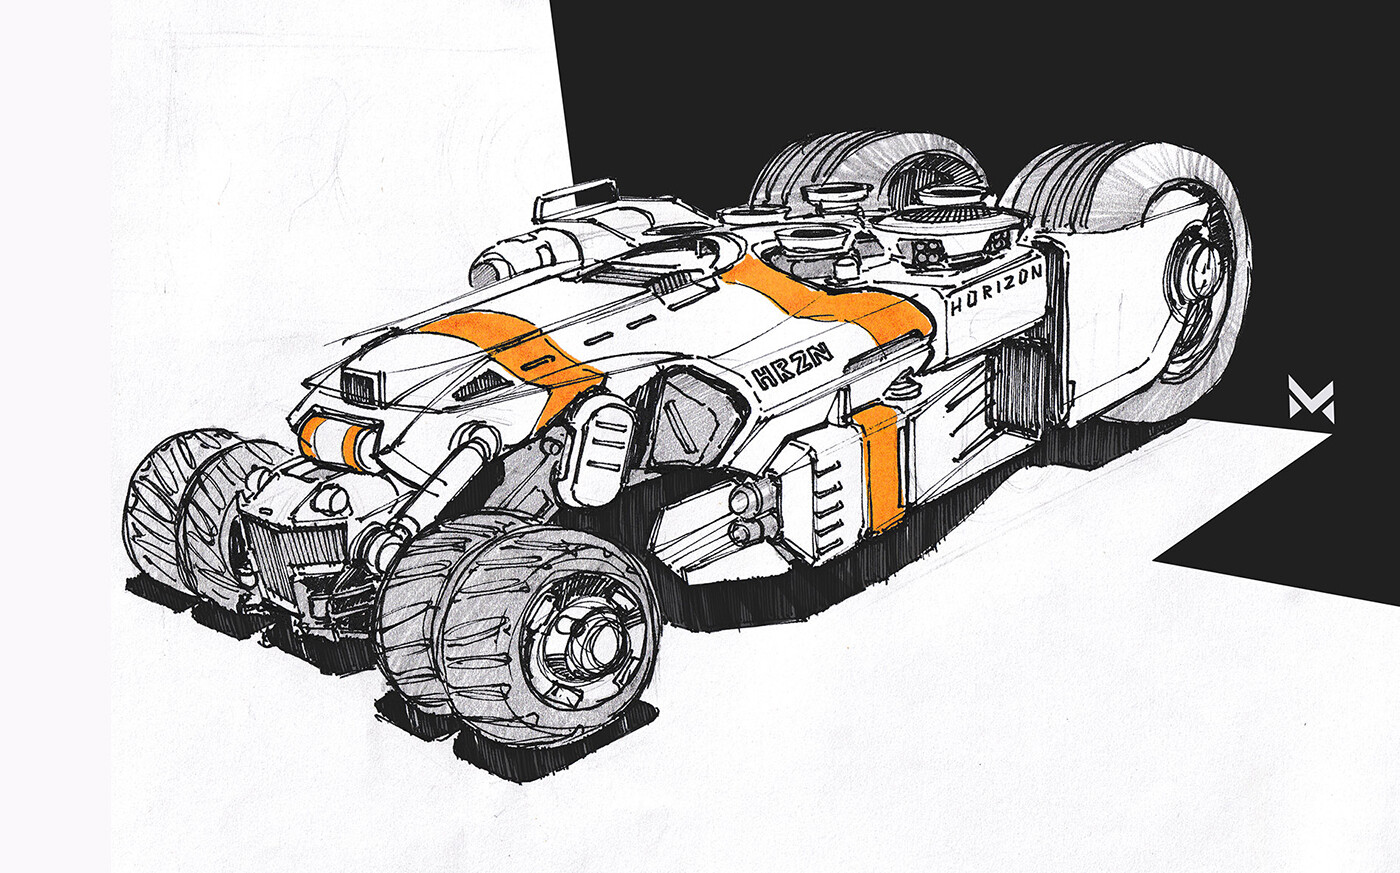 Powermachine - inspired by the game 'GRIP: Combat Racing'